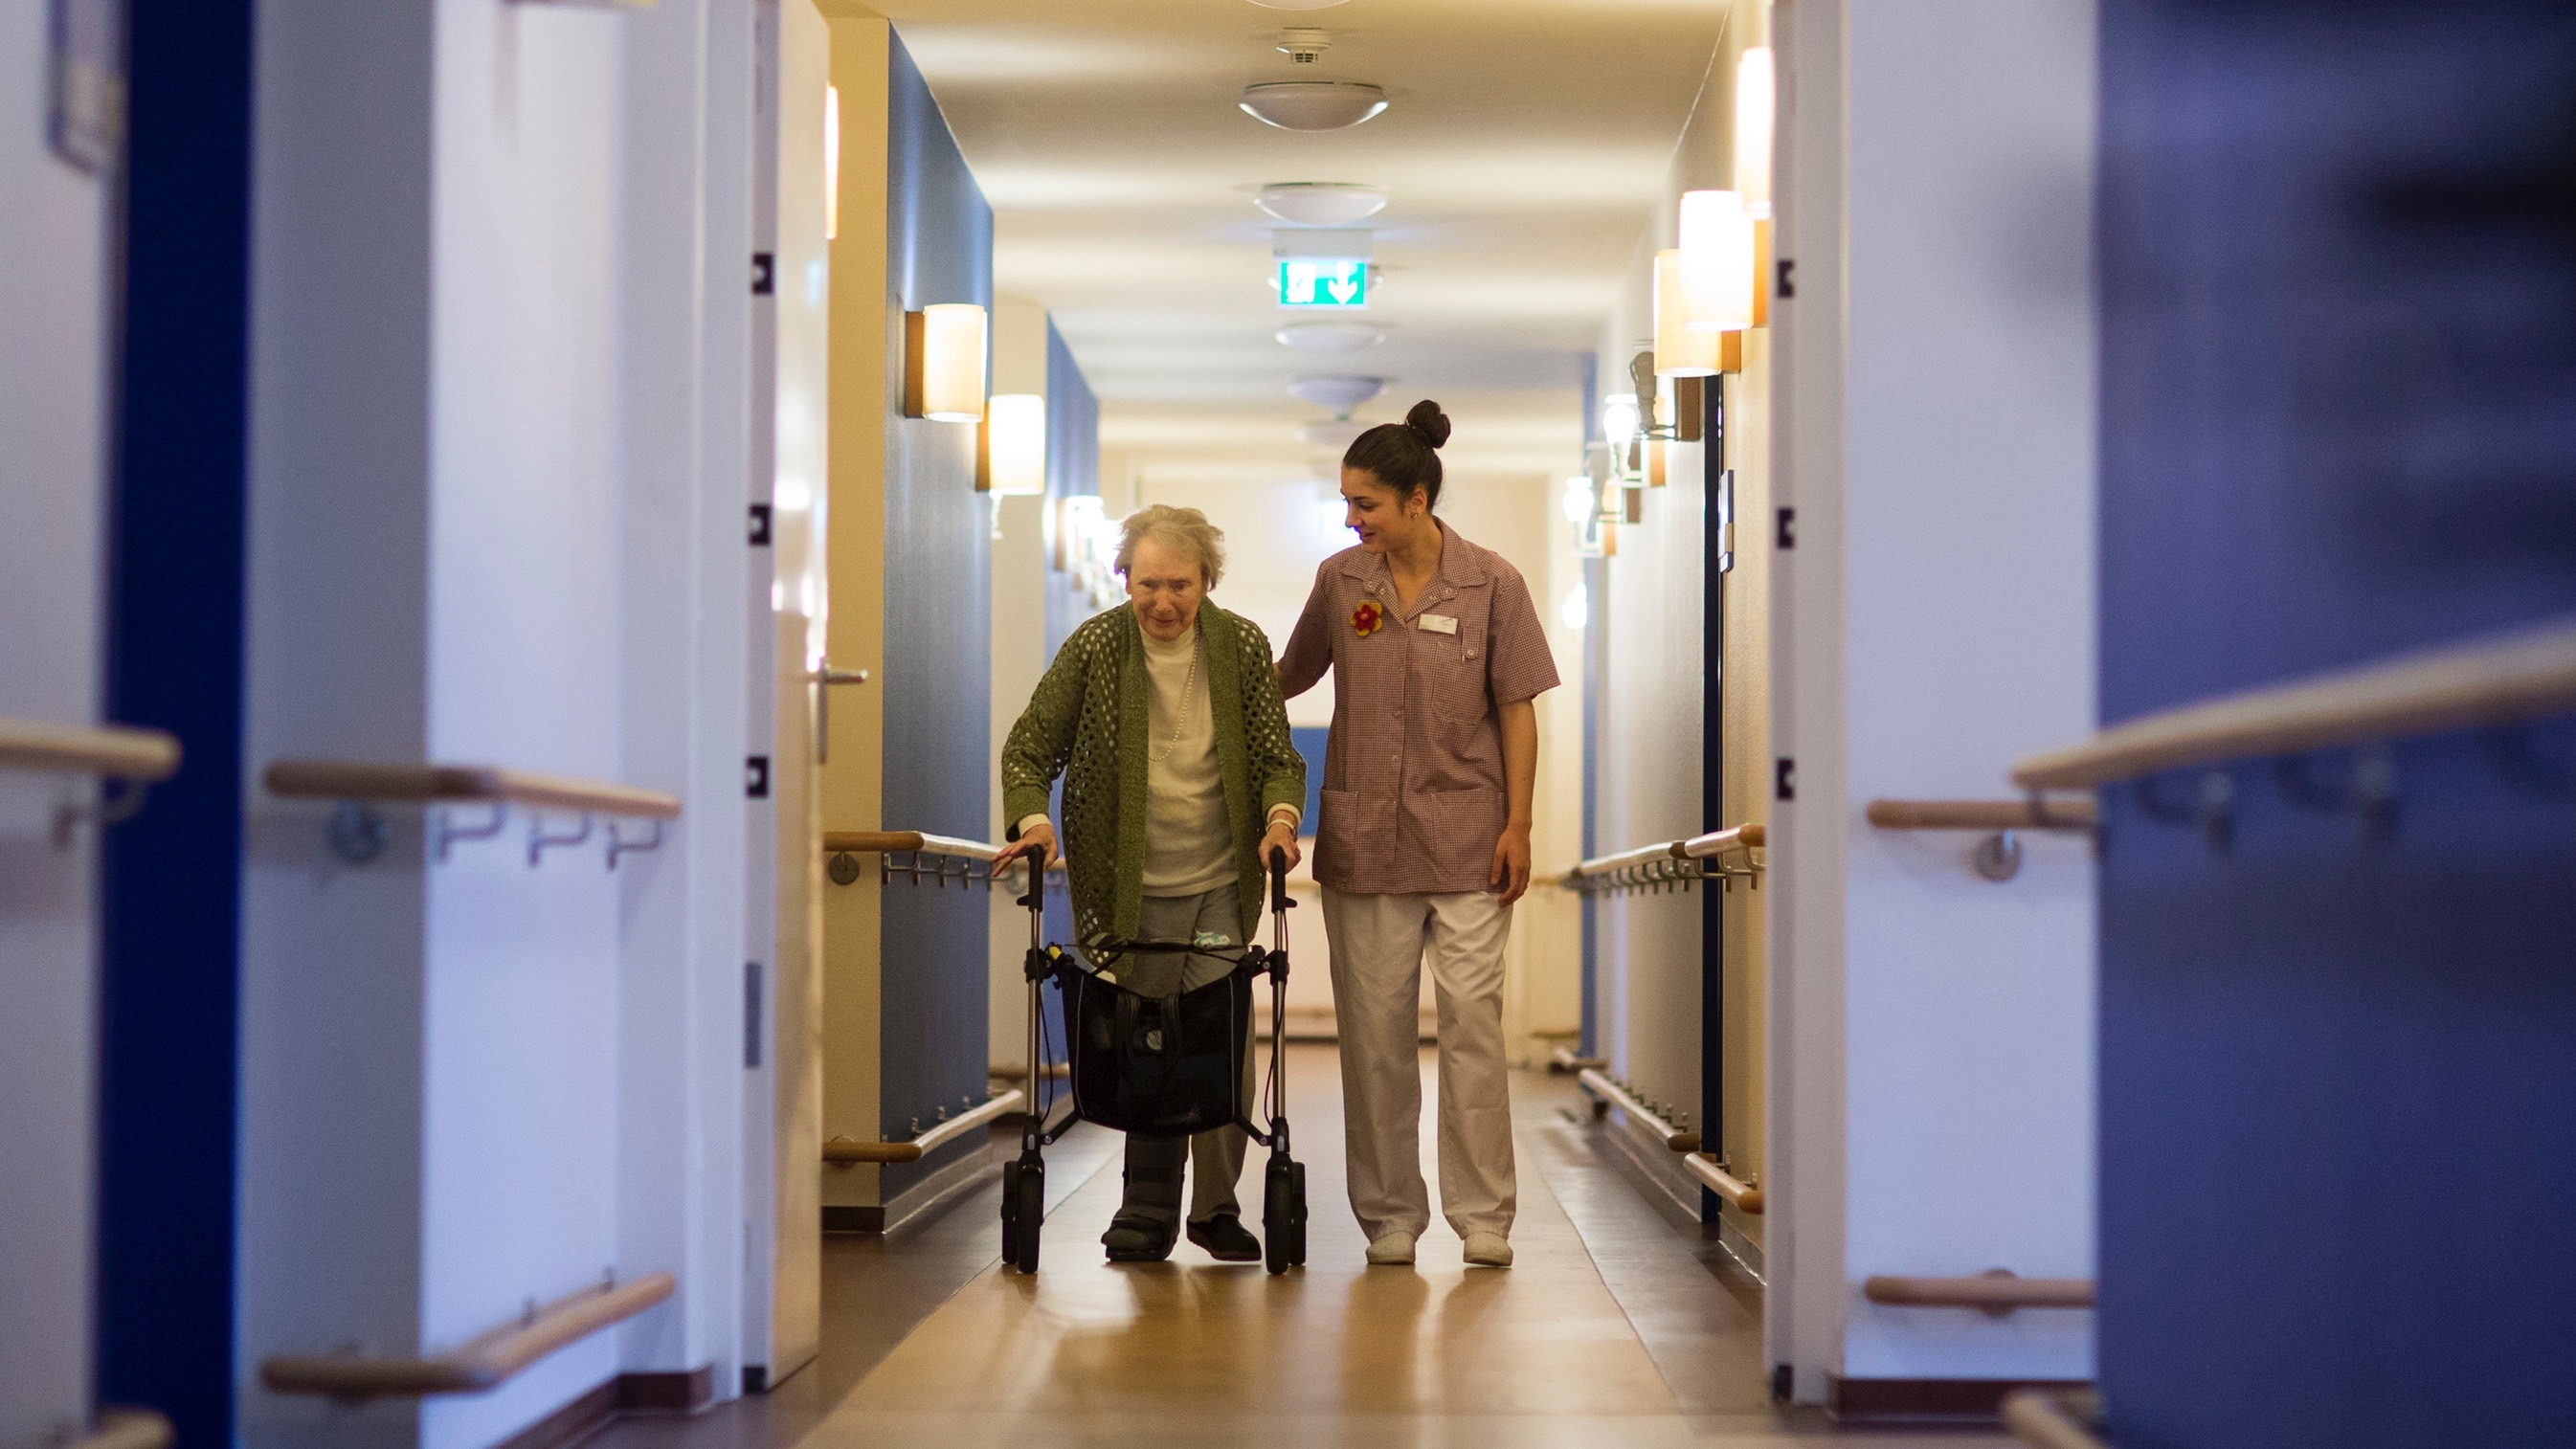 Raquel Lopez Leon from the Spanish city of Cordoba assists a resident on her way to lunch at the SenVital elderly home in Kleinmachnow outside Berlin May 28, 2013. Facing an acute shortage of skilled applicants among its own workforce, German institutions in the care sector increasingly turn to southern European countries to hire trained nursing staff who are willing to work abroad despite the language barrier in order to escape unemployment at home. The SenVital home for the elderly outside Berlin has accepted five qualified nurses from Spain as their staff, providing eight months of language training and additional care schooling needed to attain the German nursing concession.  Some 100 Spaniards applied for the ten vacancies SenVital had advertised across its various houses.  REUTERS/Thomas Peter (GERMANY ) - RTX103ZC